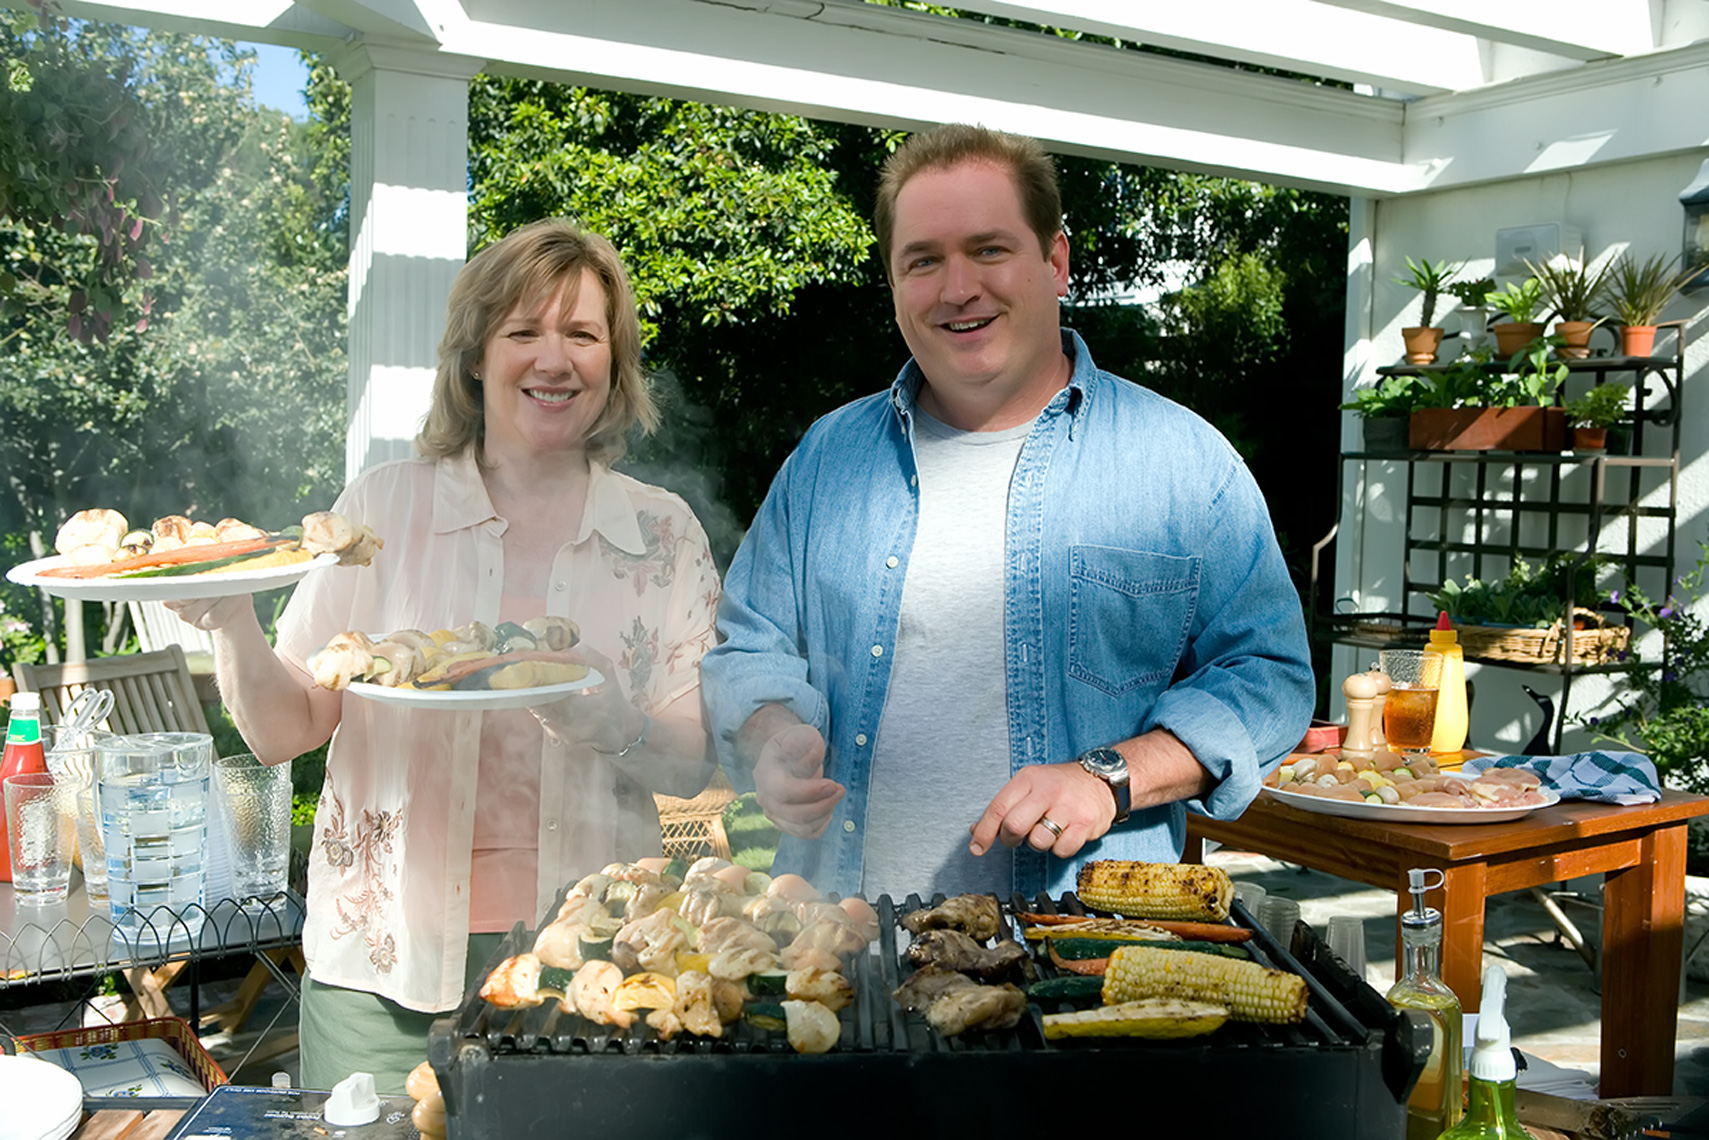 couple with gilled food on patio